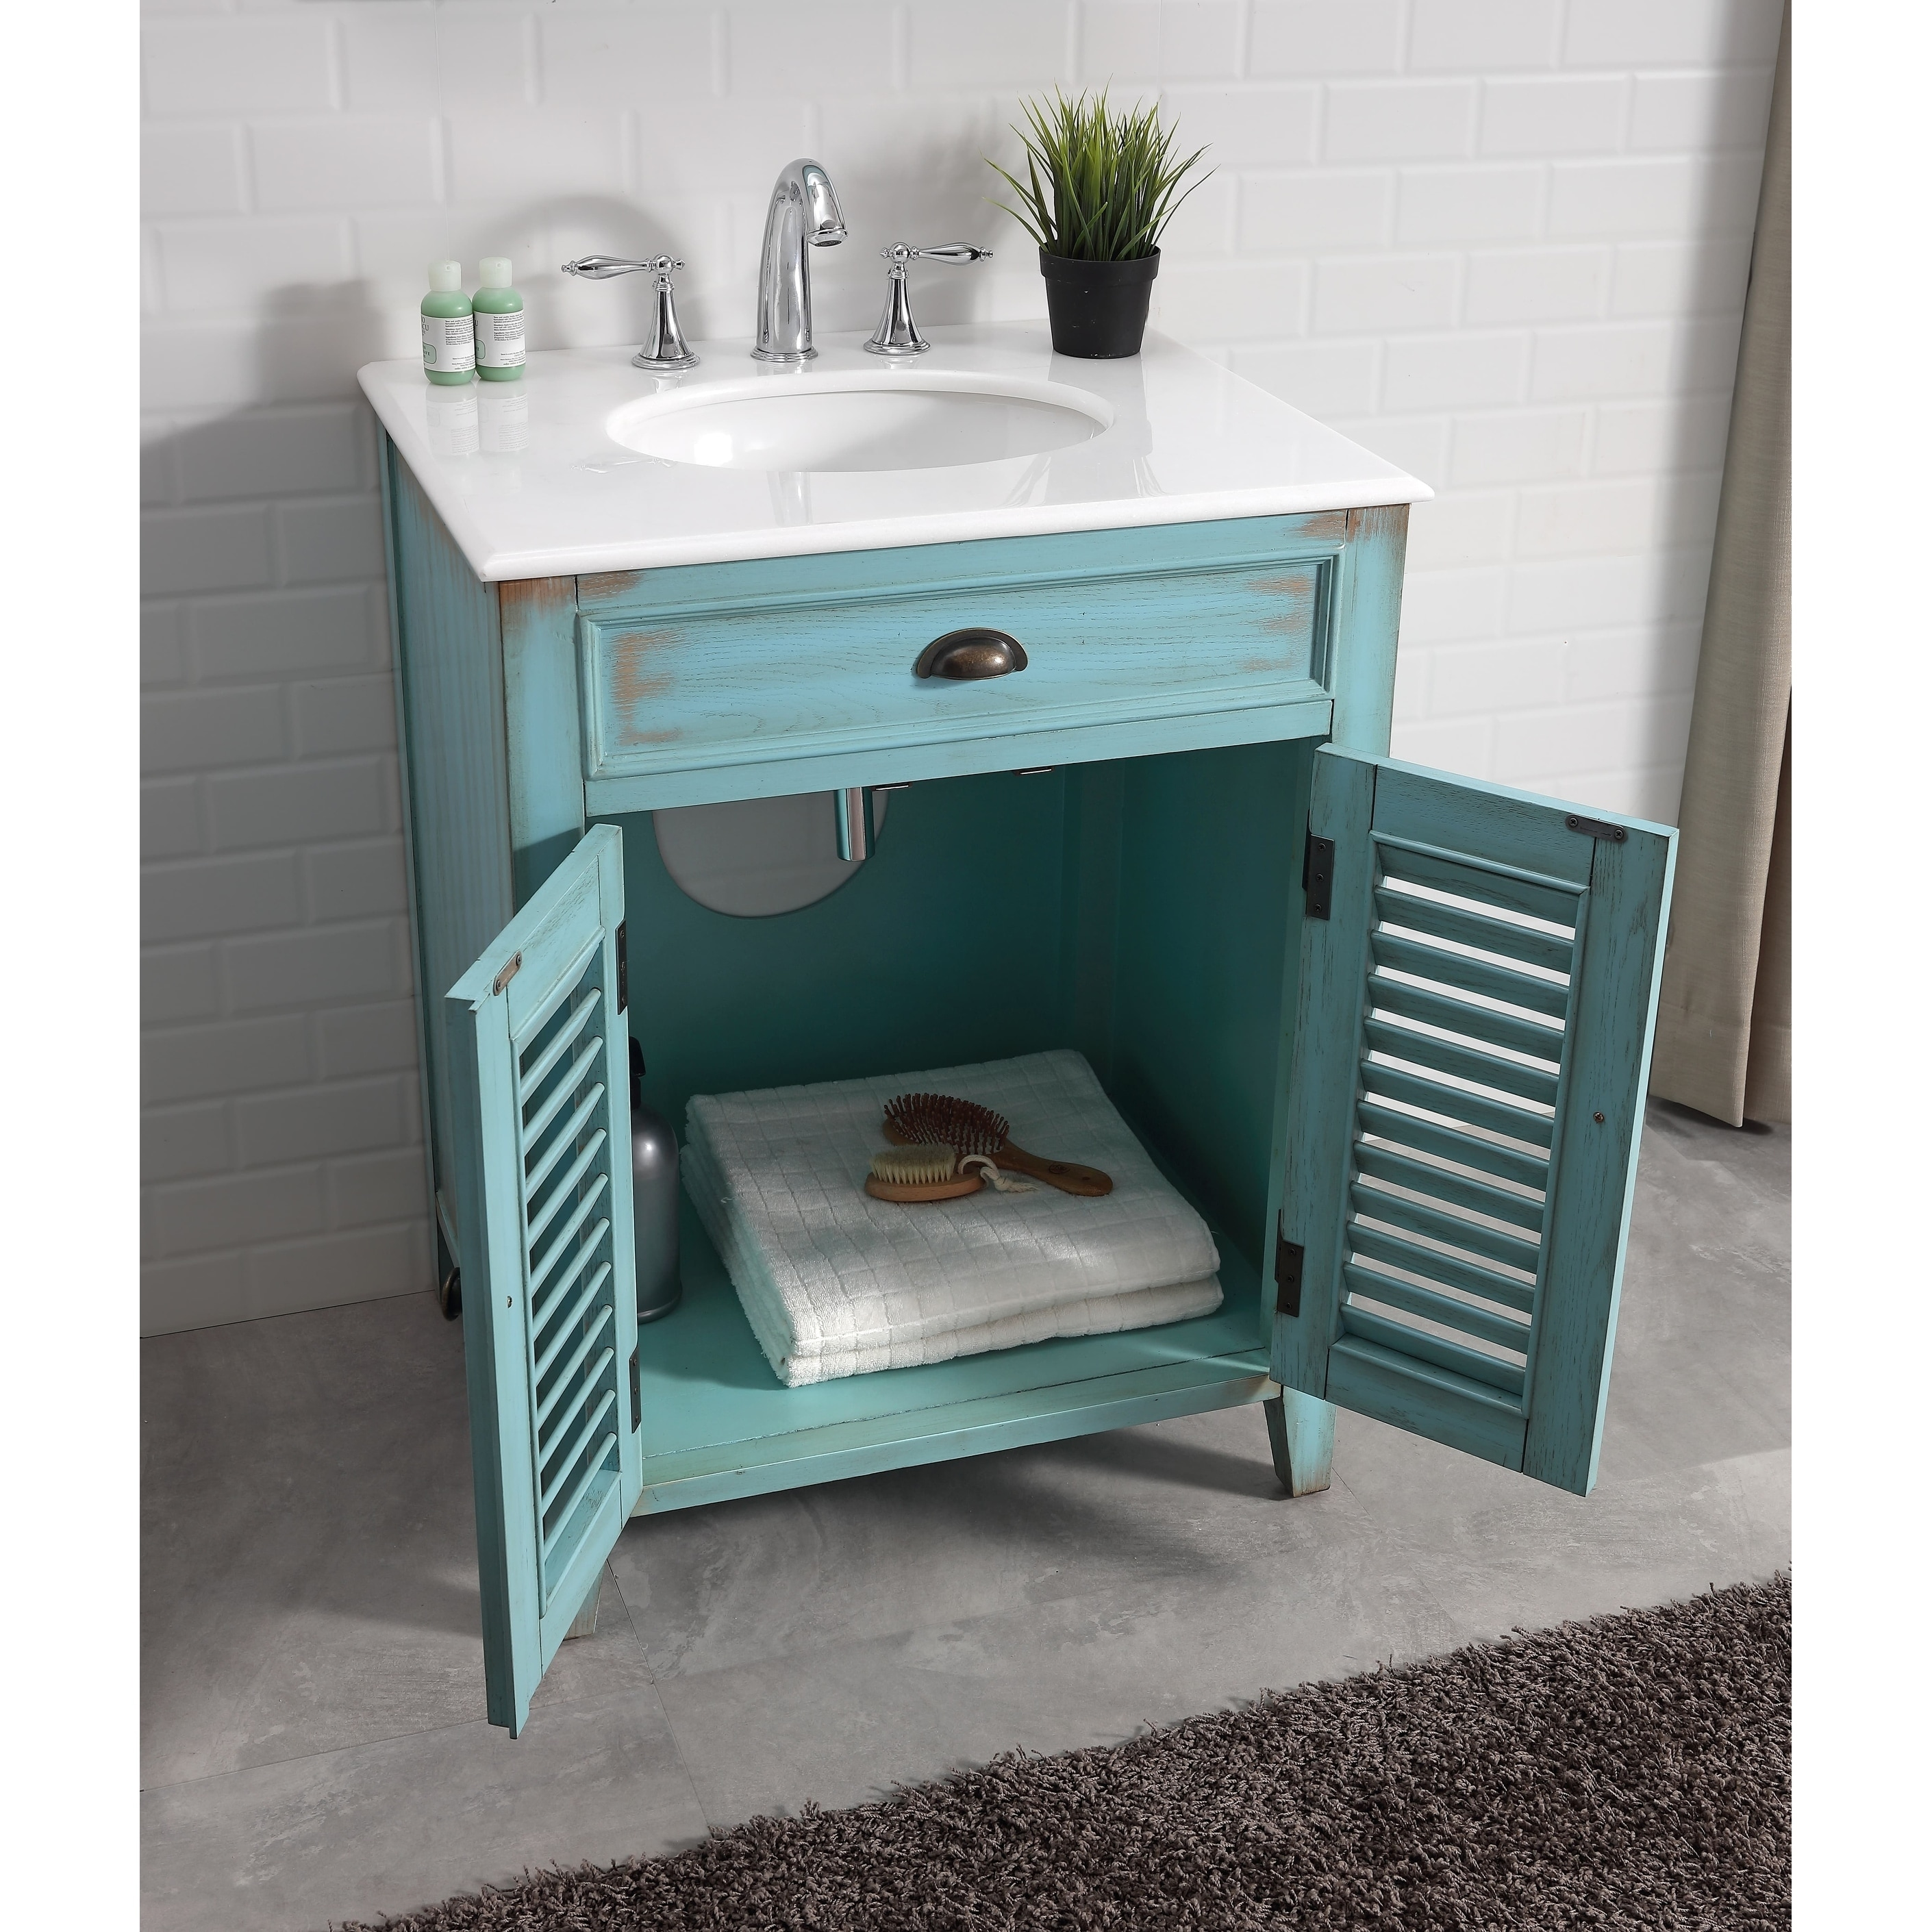 Modetti Palm Beach 26 Inch Single Sink Bathroom Vanity With Marble